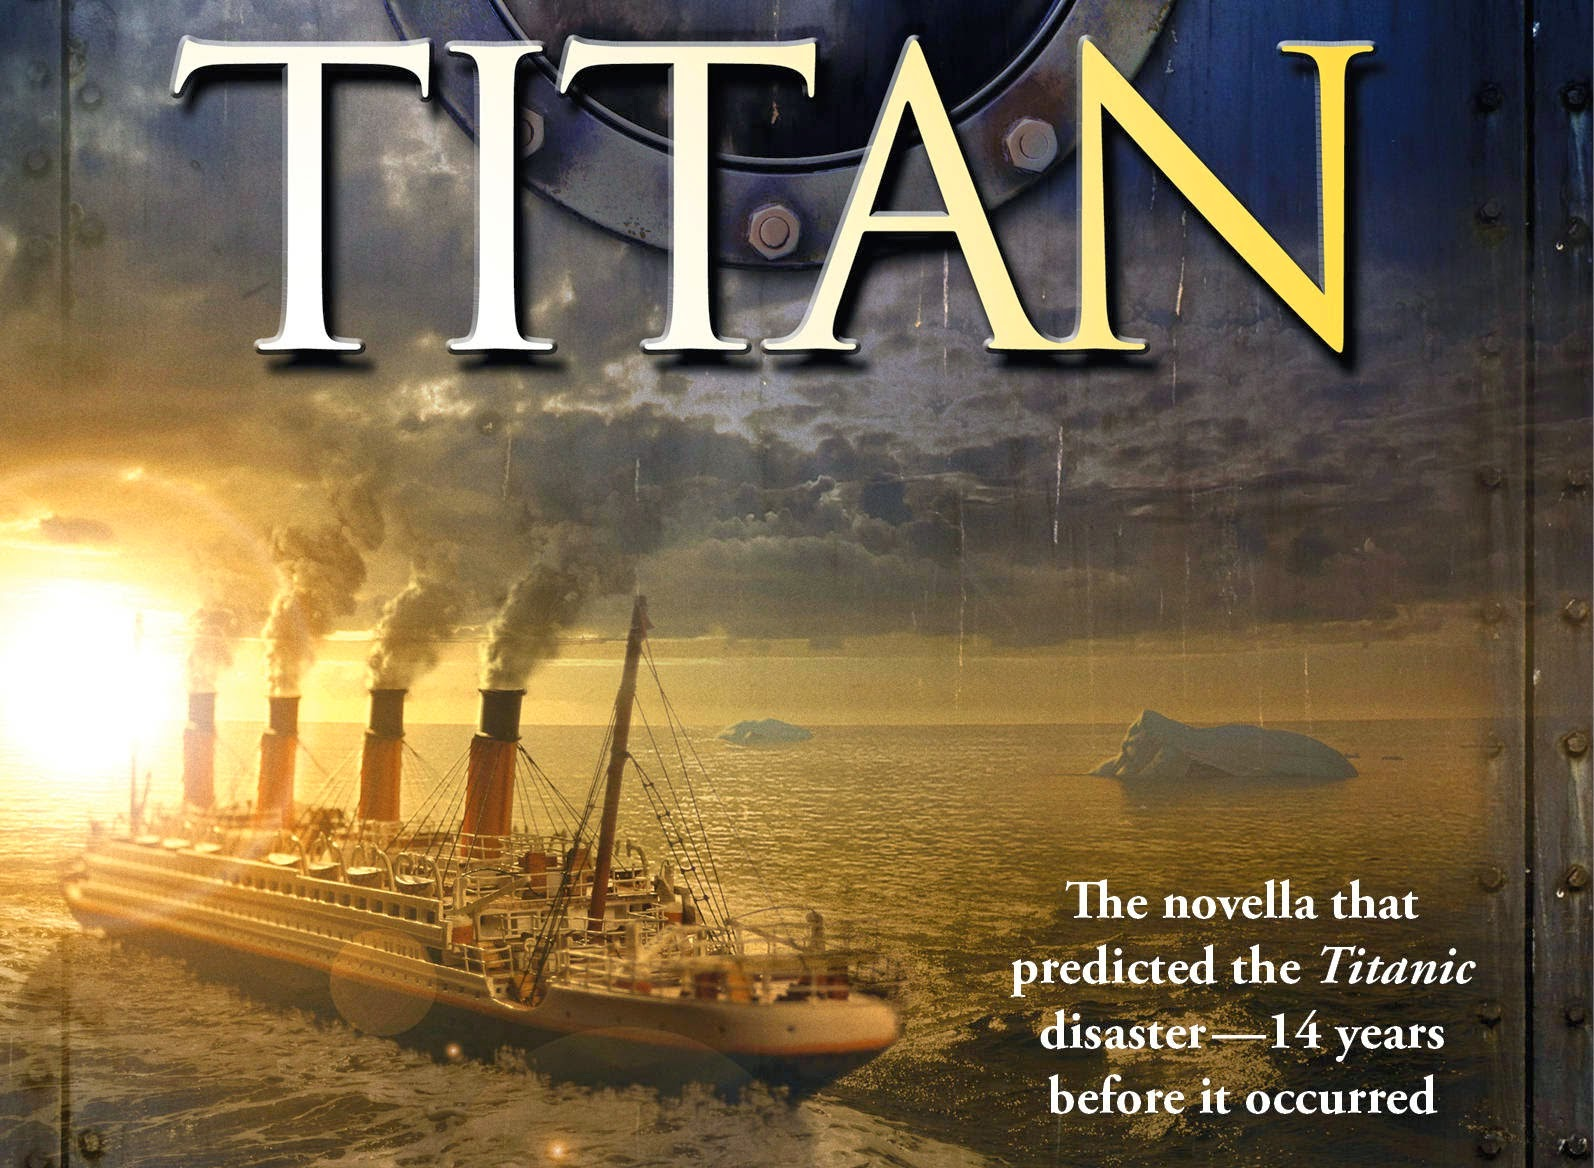 The Book That Predicted the Sinking of the Titanic - 14 Years Before the Event